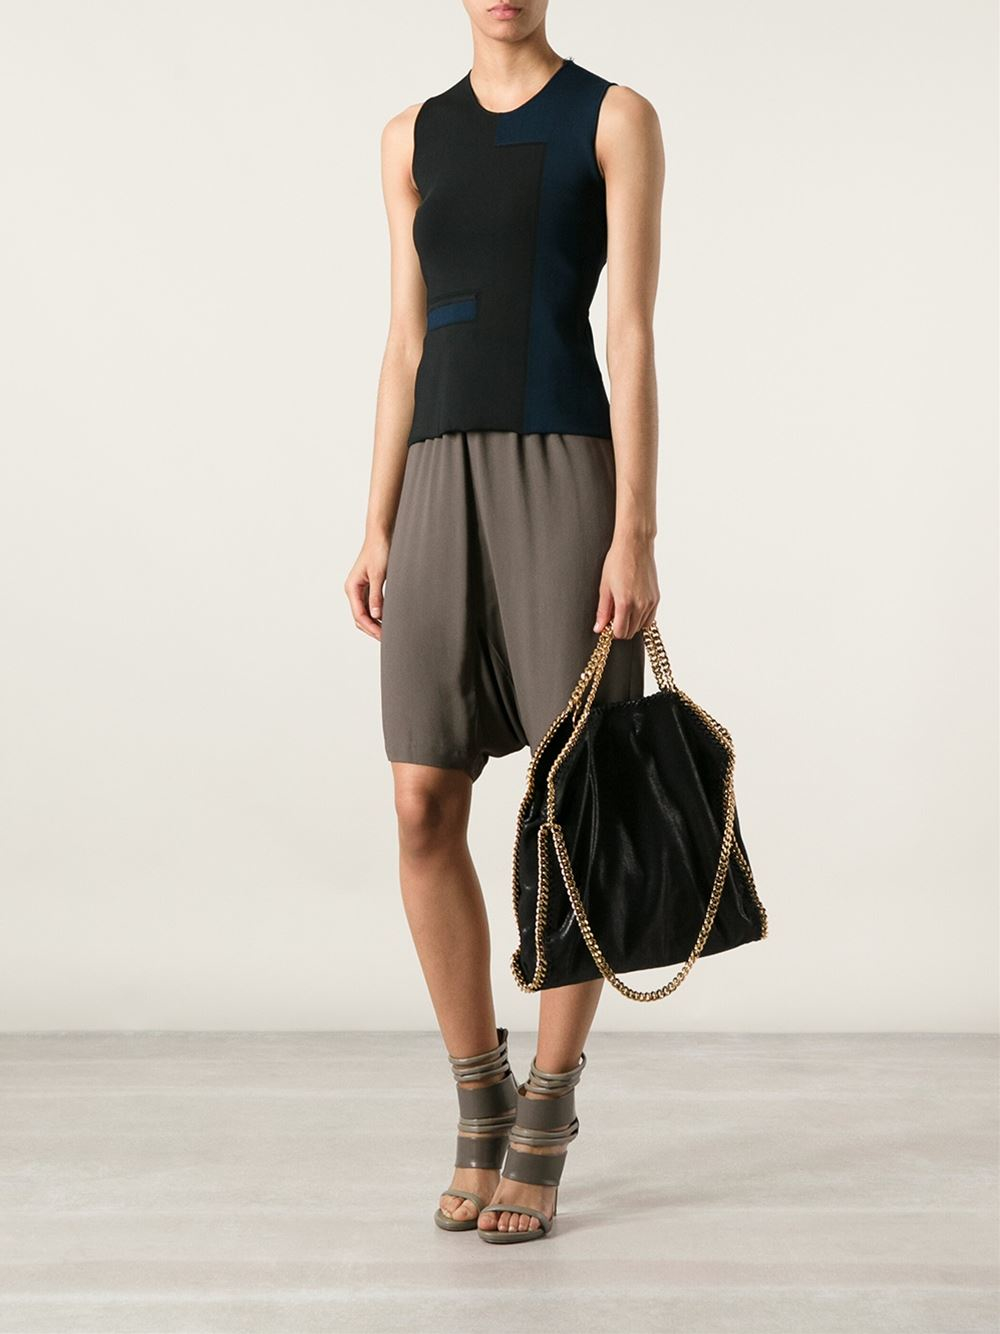 Falabella 3 Chain Bag Stella McCartney Cheap Sale Clearance Outlet Locations OjyfpMKrI